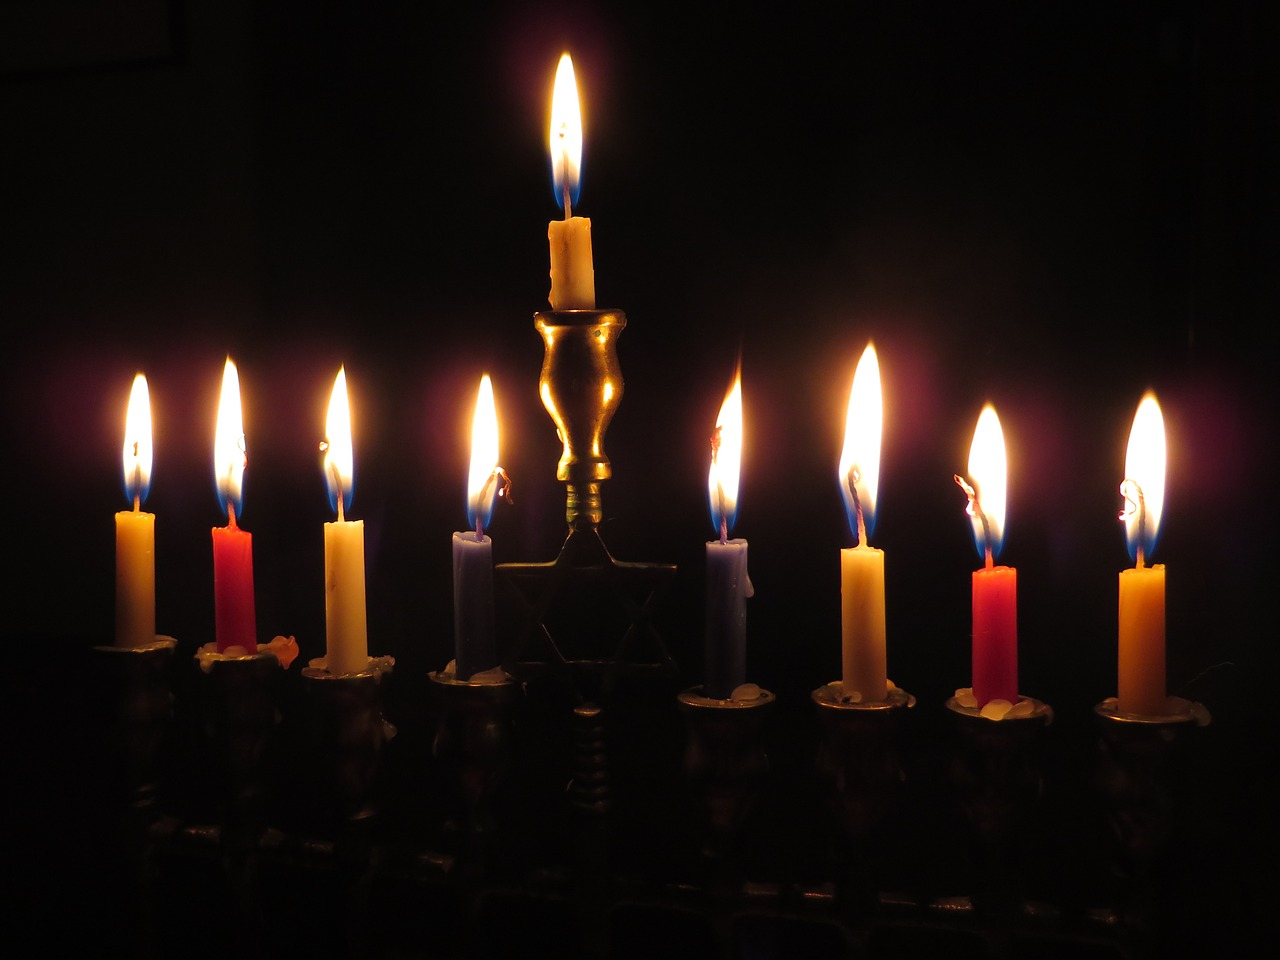 A menorah with all eight candles and the leading candle (shamash) lit in a dark room